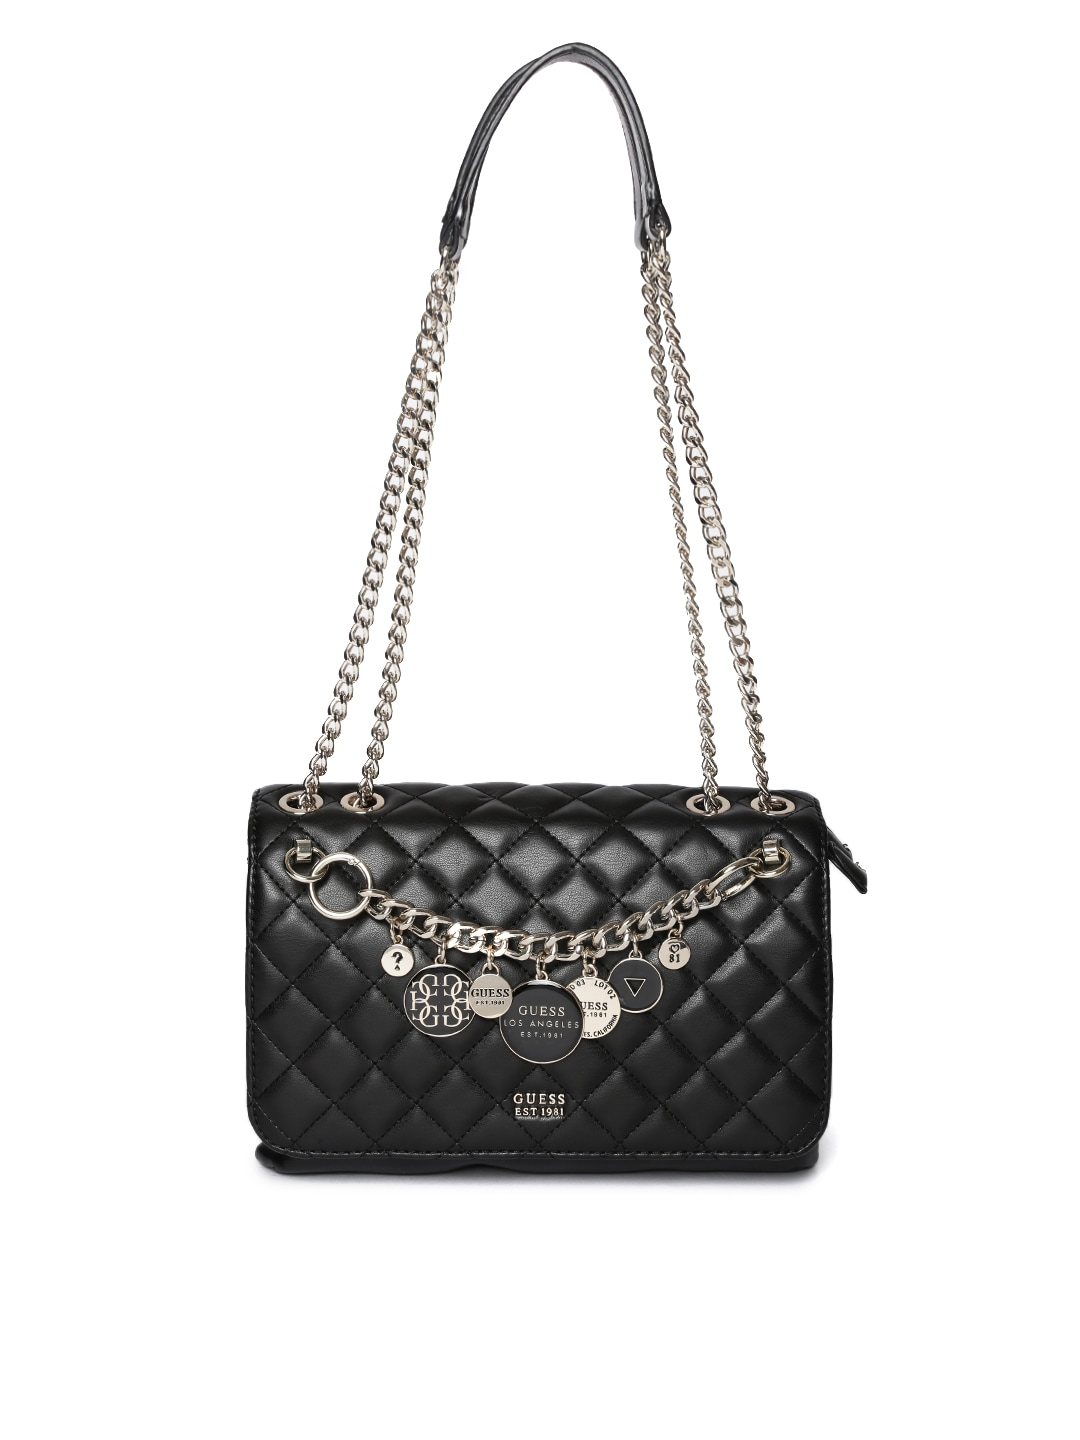 36c391dfd4f9 Guess Bags - Buy Guess Bags for Women Online - Myntra